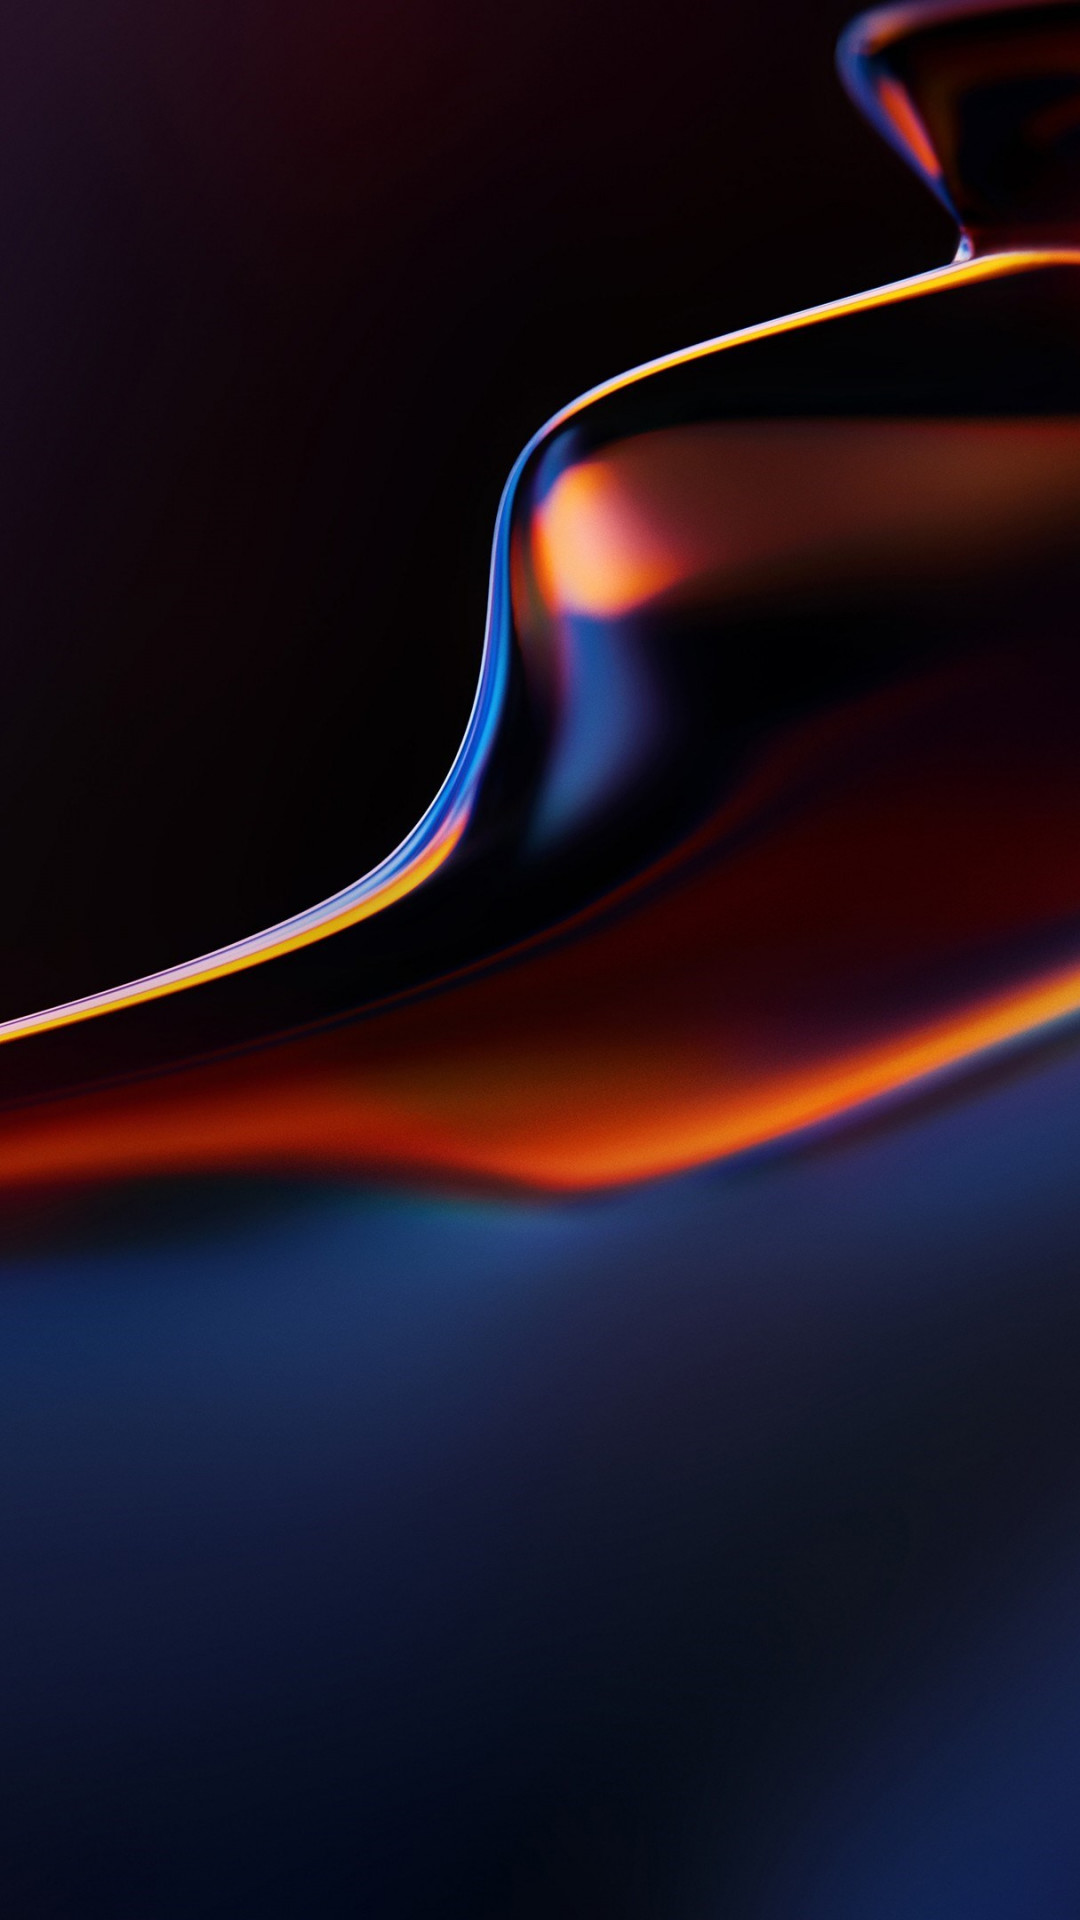 Abstract, flow, OnePlus 6T wallpaper 1080x1920